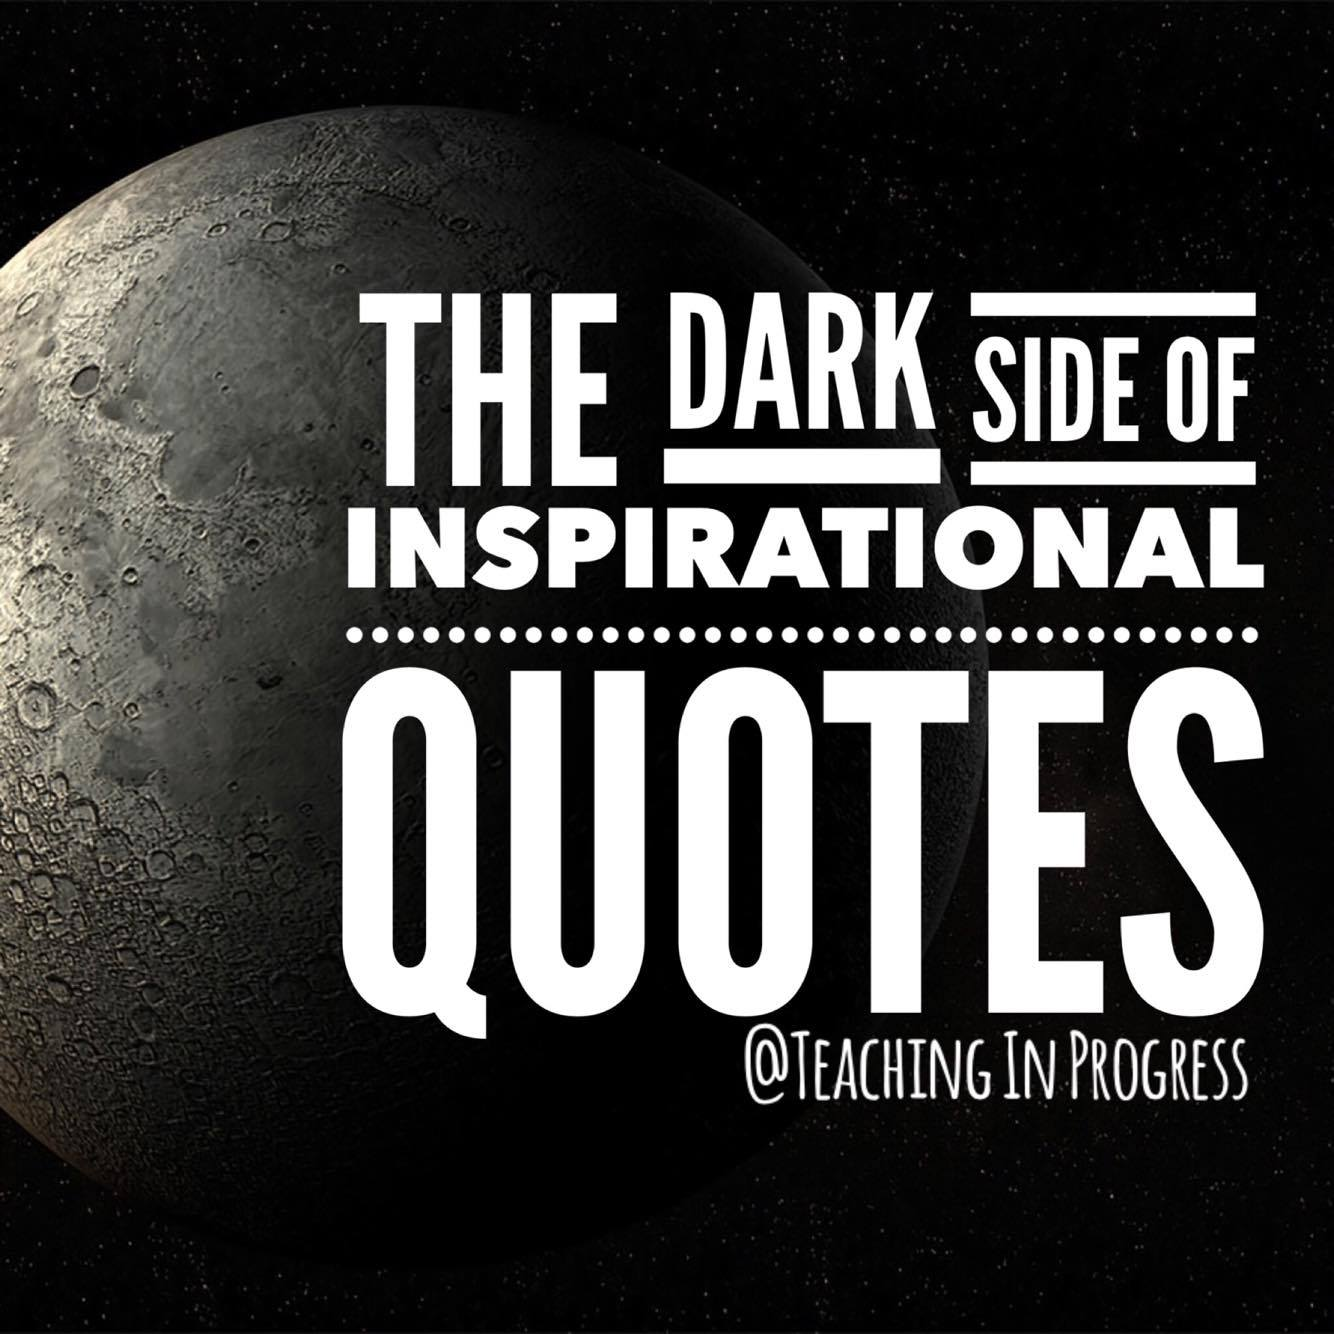 Inspirational Uplifting Quotes Amazing The Dark Side Of Inspirational Quotes  Teaching In Progress